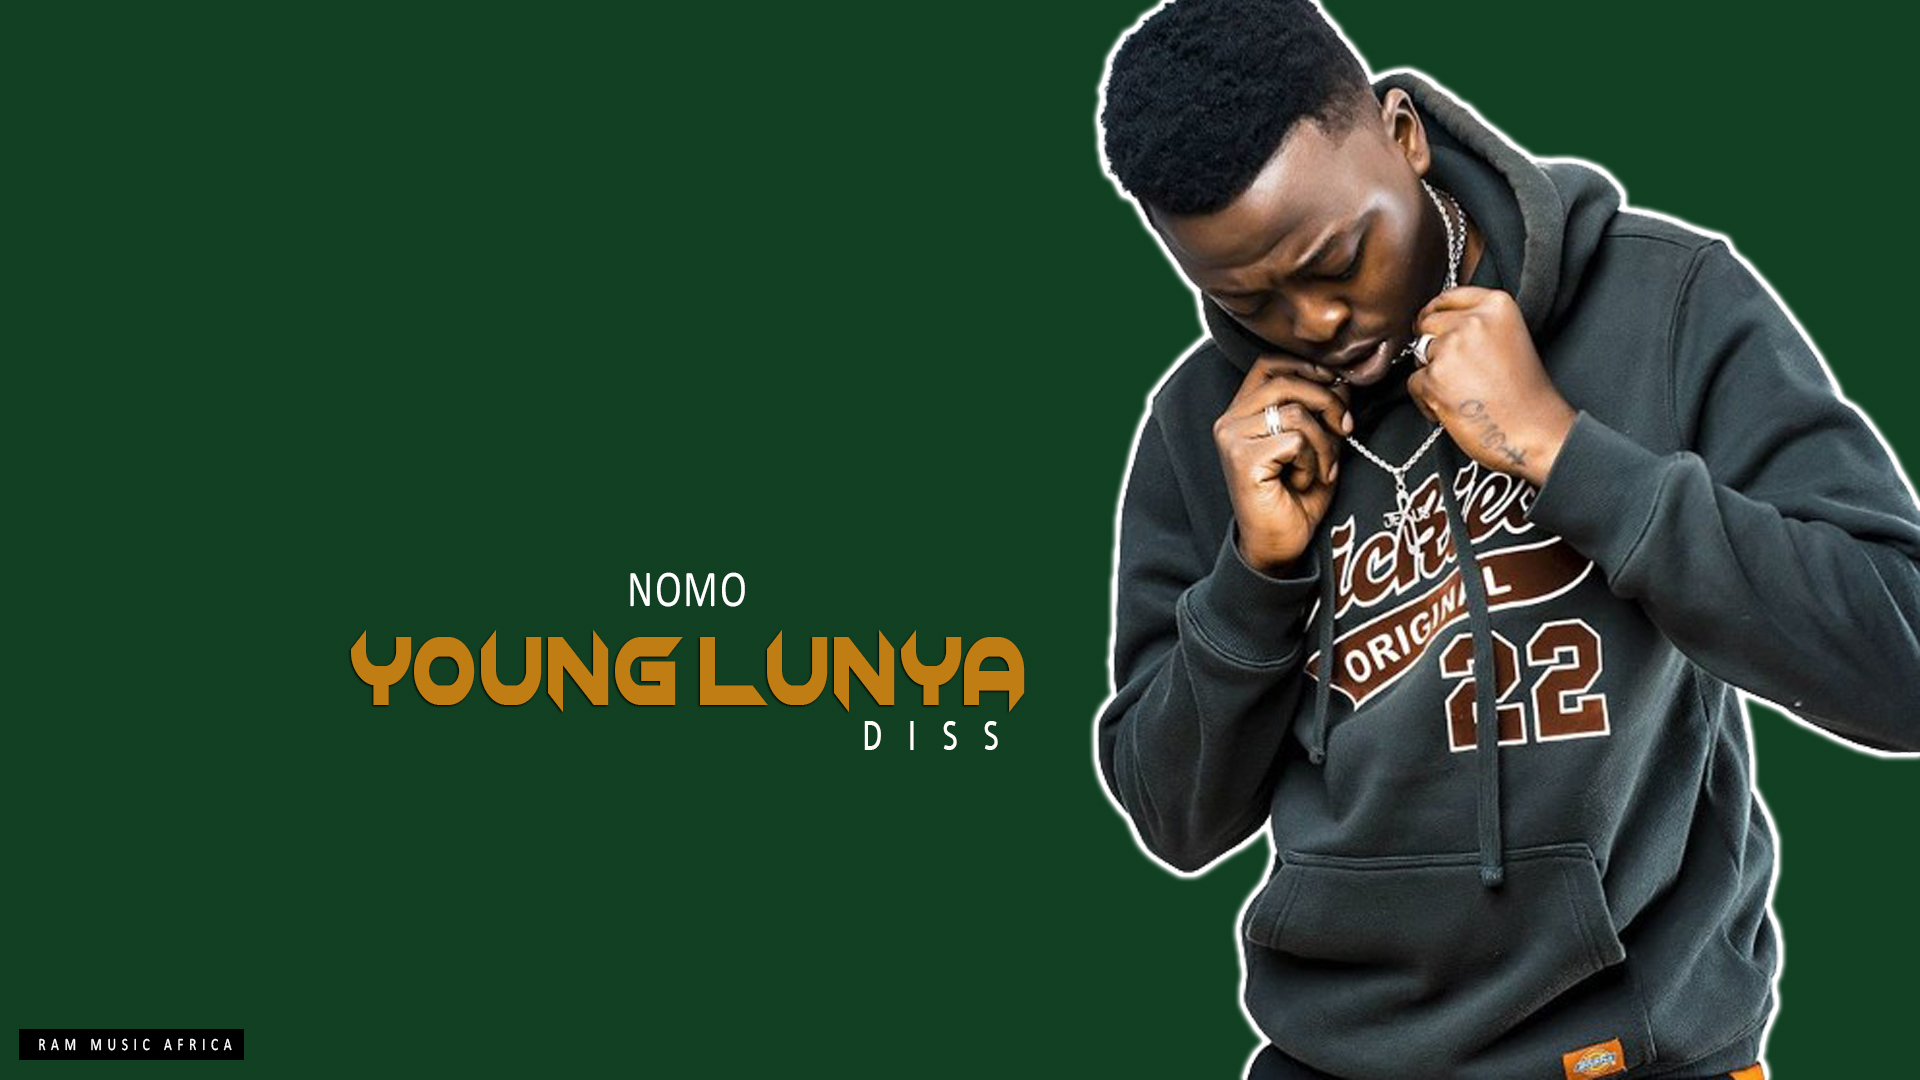 Photo of Nomo – Young lunya (Diss) | Download Audio mp3